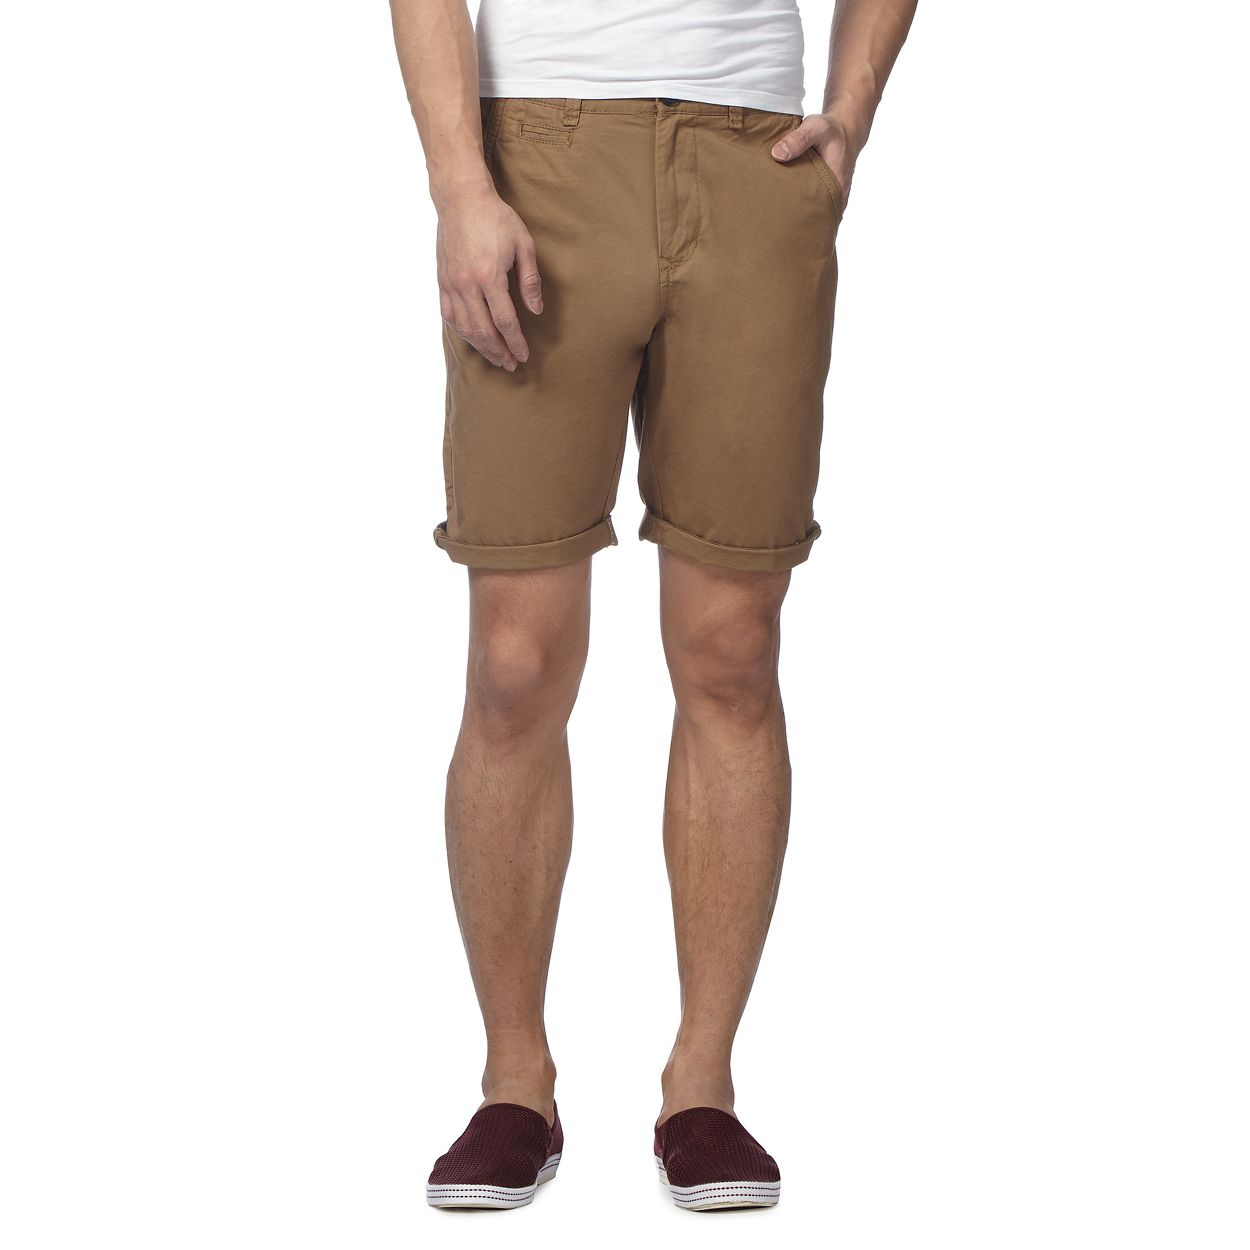 Red Herring Light Brown Light brown cargo shorts